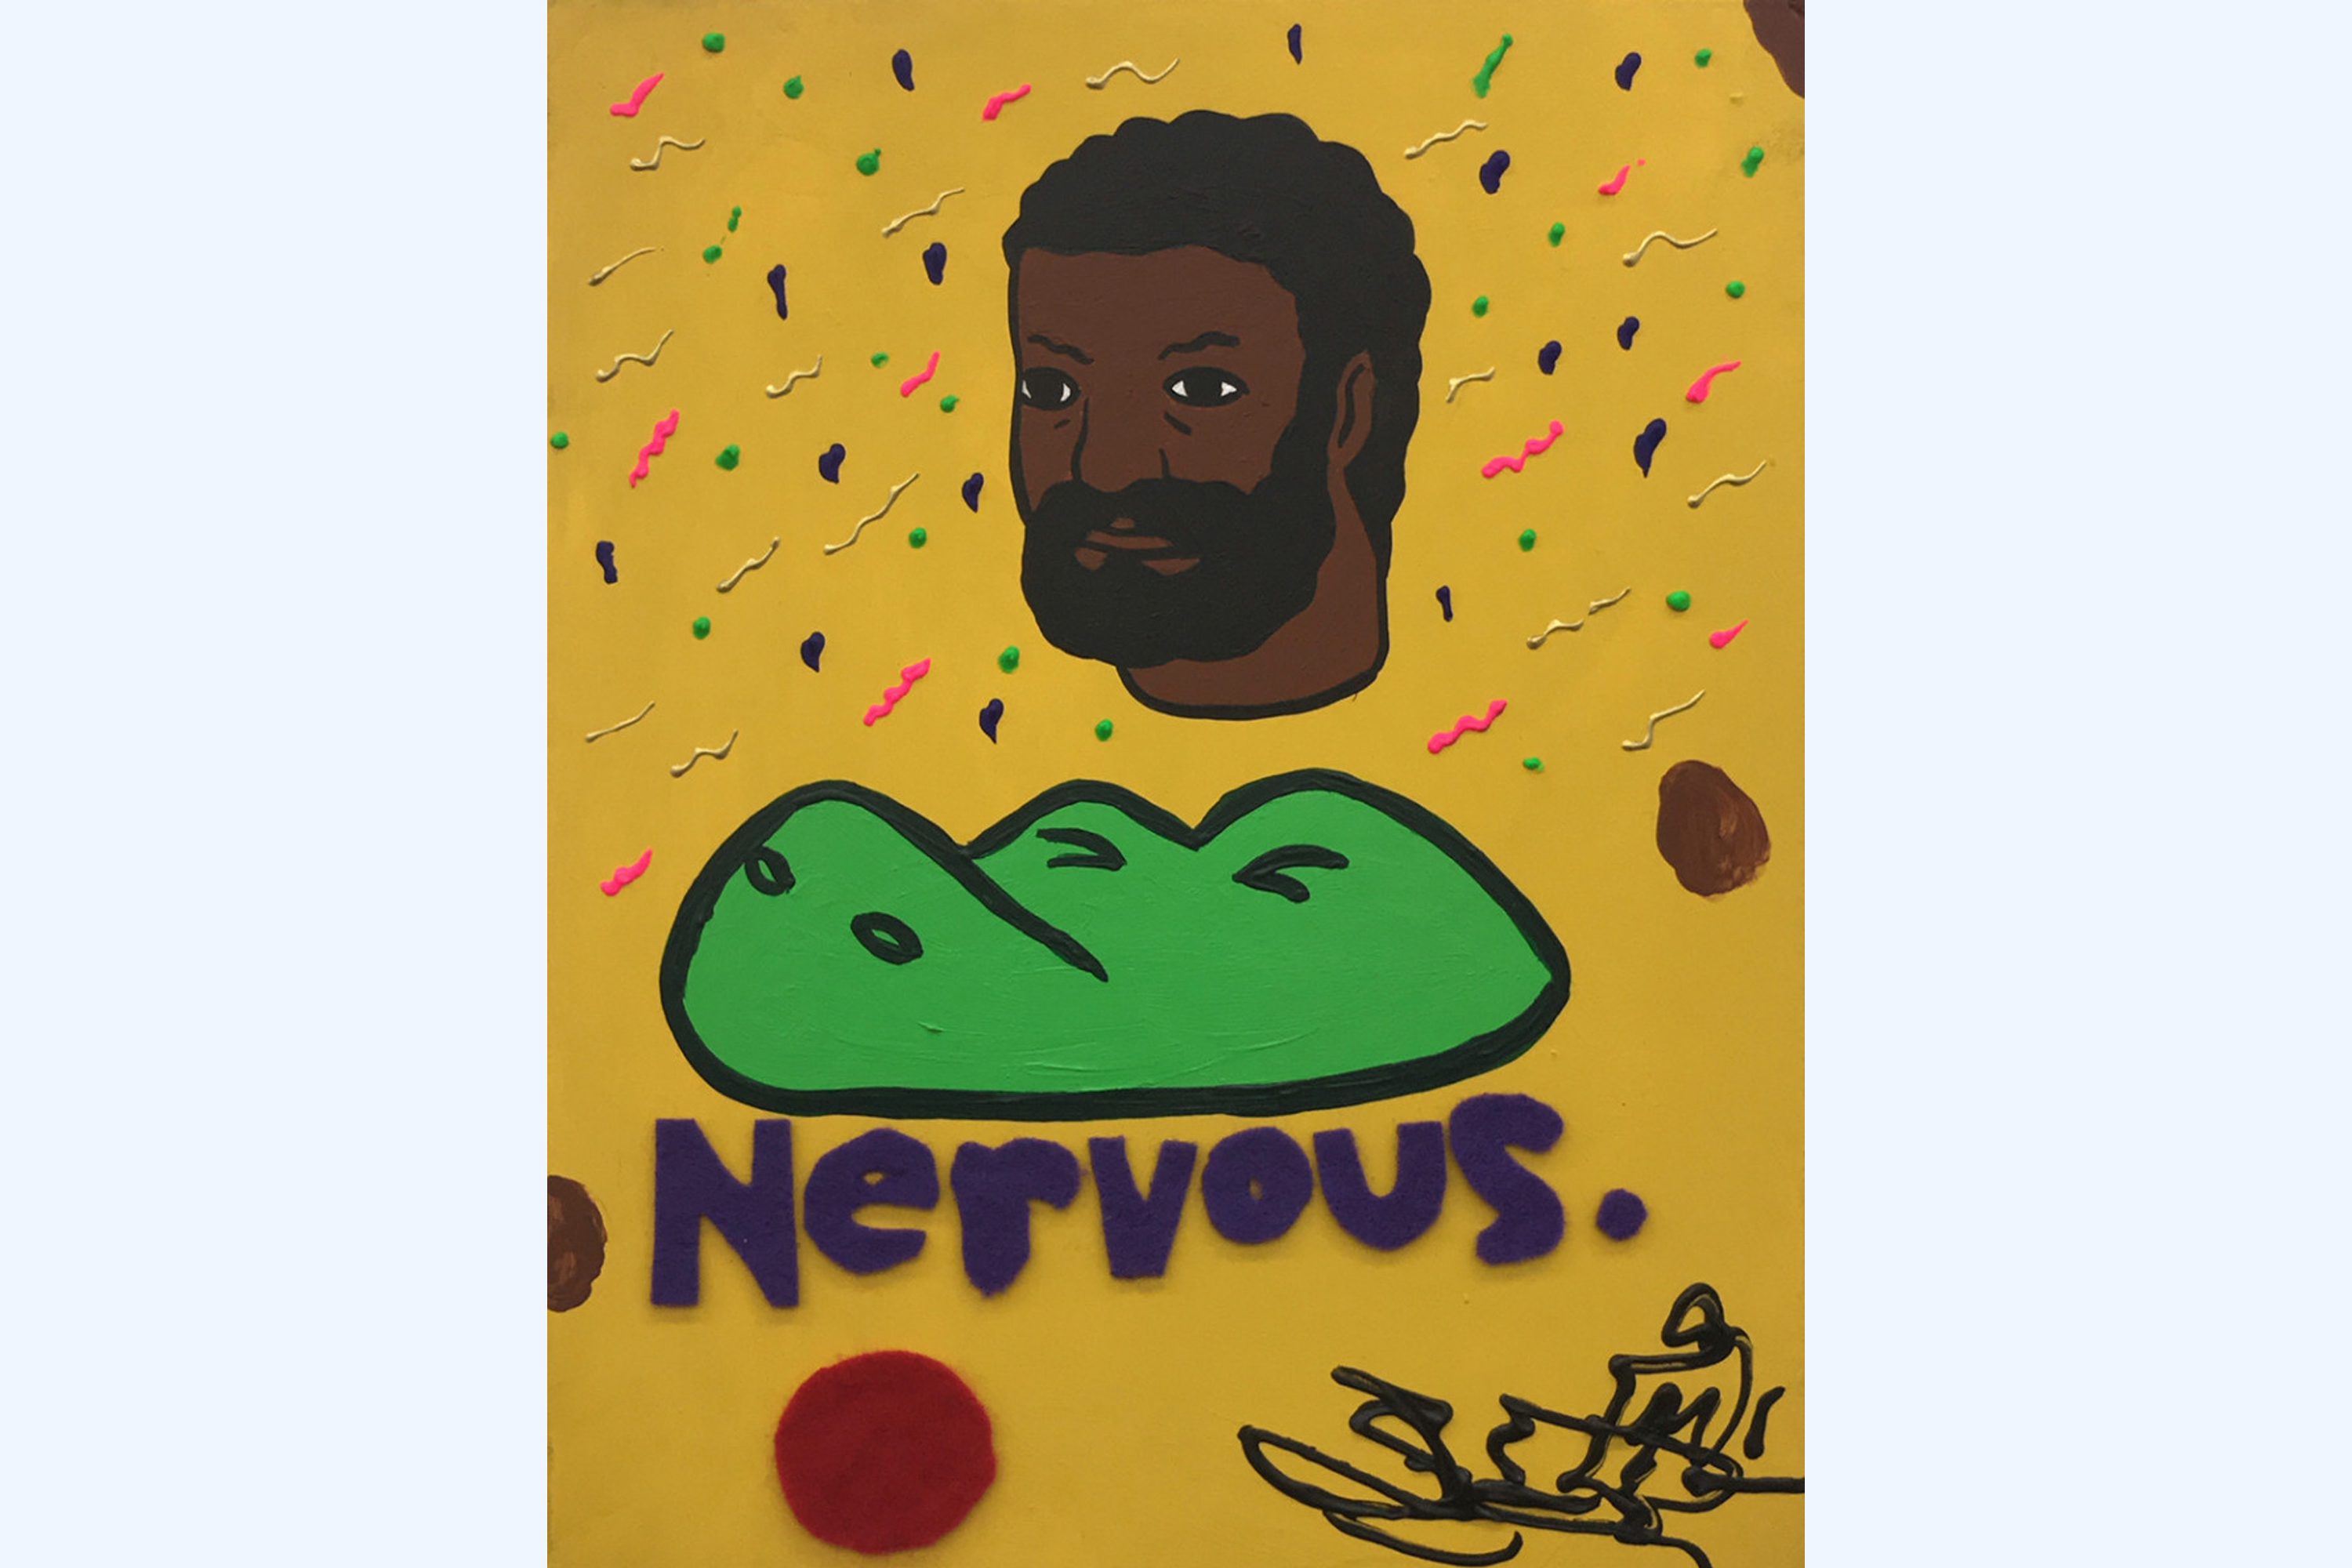 "A painting of a dark brown skinned man with short curly hair with a beard and mustache. The man's head is floating on a yellow background, which has thick squiggles and splatters of paint in yellow, navy, neon pink, and neon green. Below the man's head is a cartoon-style crocodile head with its eyes tightly closed. Below the crocodile is the word ""Nervous."" in purple felt."